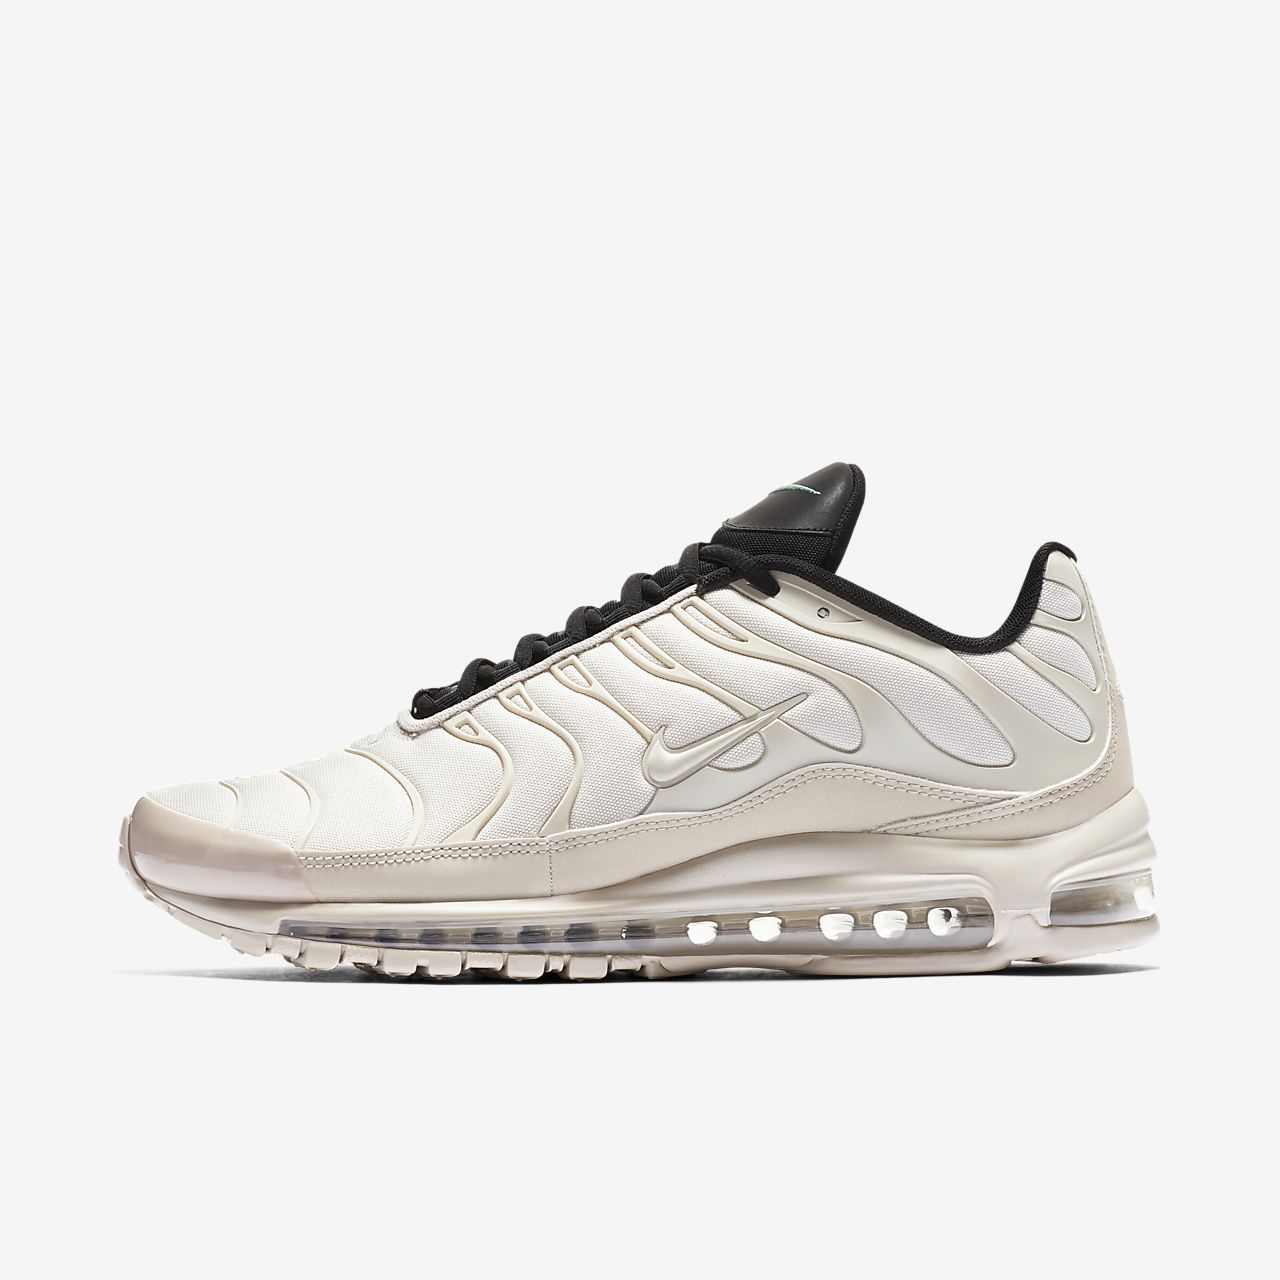 1b1f597cc51 Nike Air Max 97 Plus Men s Shoe. Nike.com GB